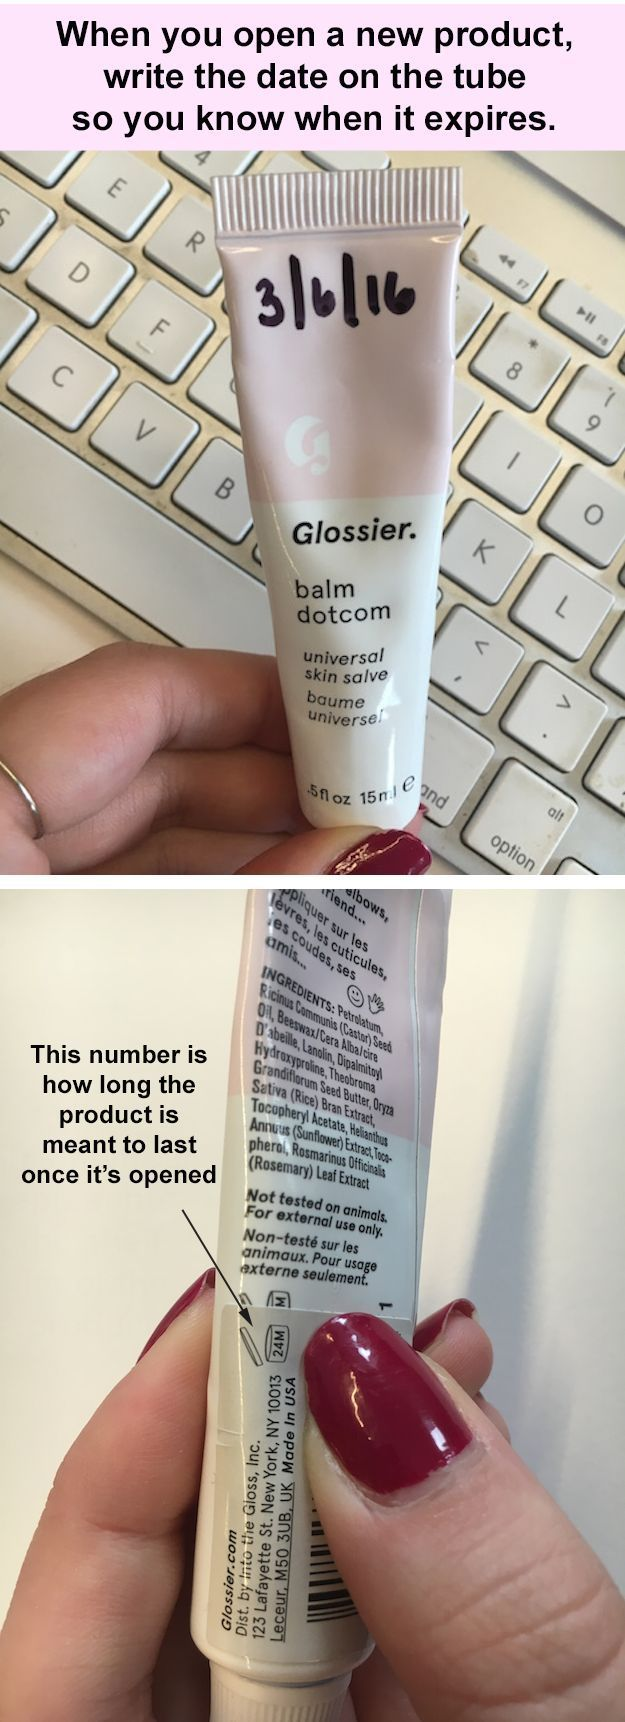 Get the most out of your beauty products by knowing exactly when you opened them#8230; #style #shopping #styles #outfit #pretty #girl #girls #beauty #beautiful #me #cute #stylish #photooftheday #swag #dress #shoes #diy #design #fashion #Makeup